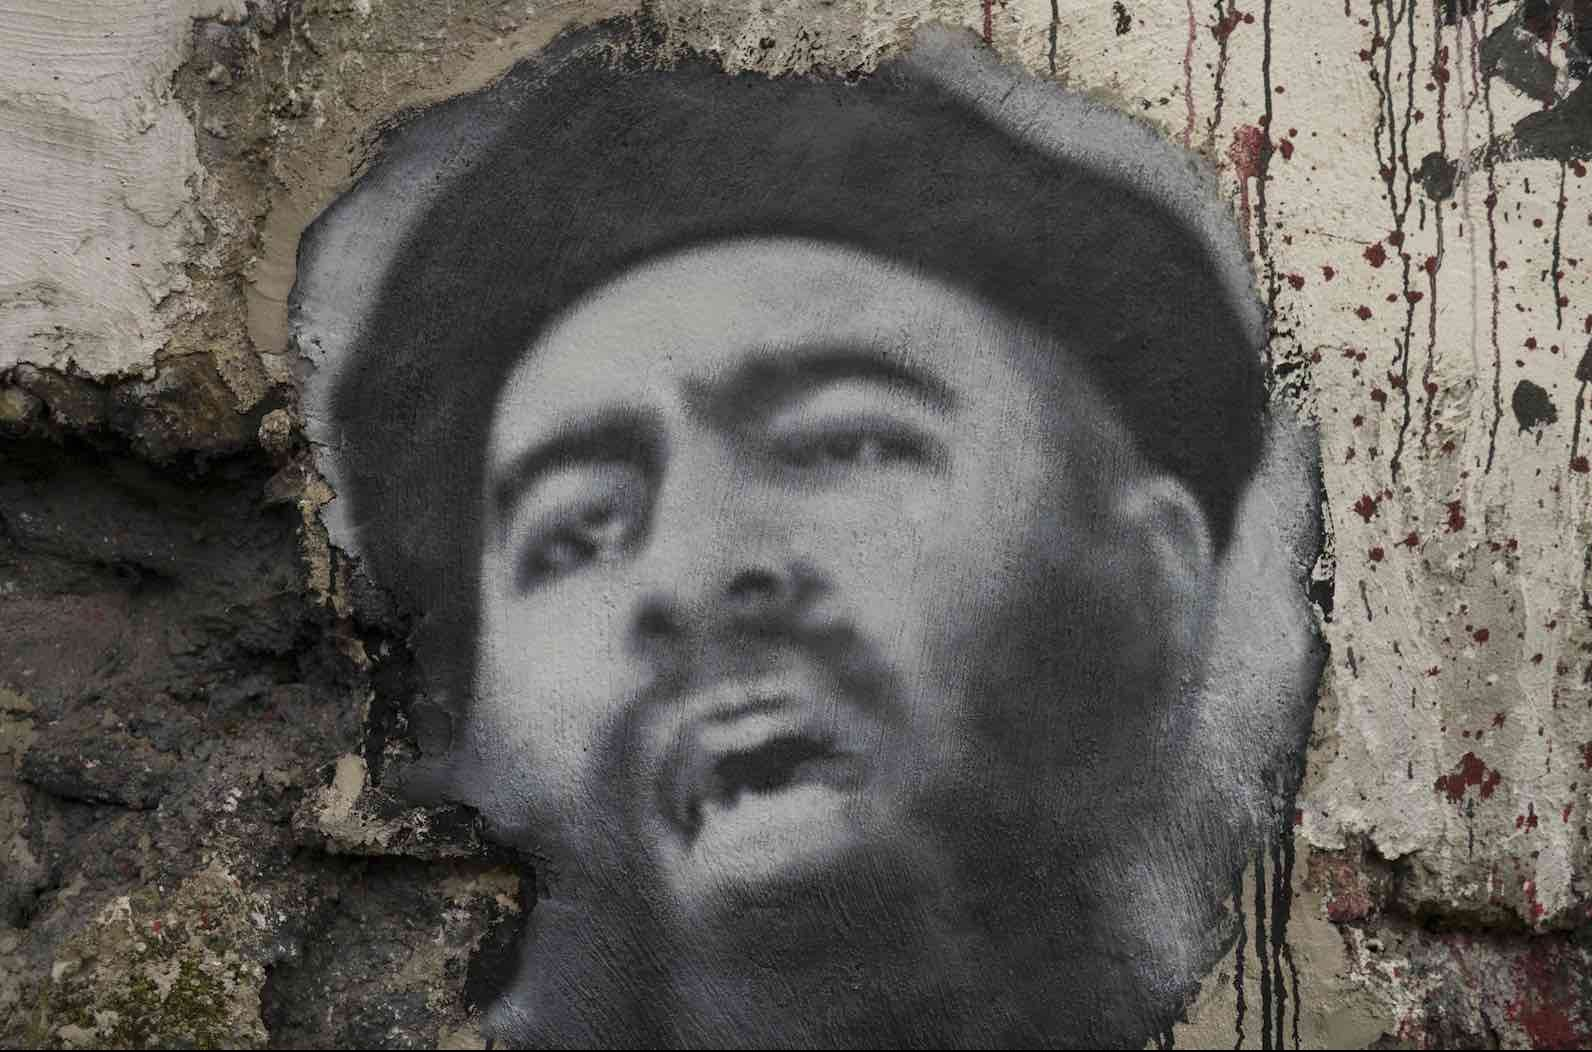 Baghdadi, the 'caliph' of terror